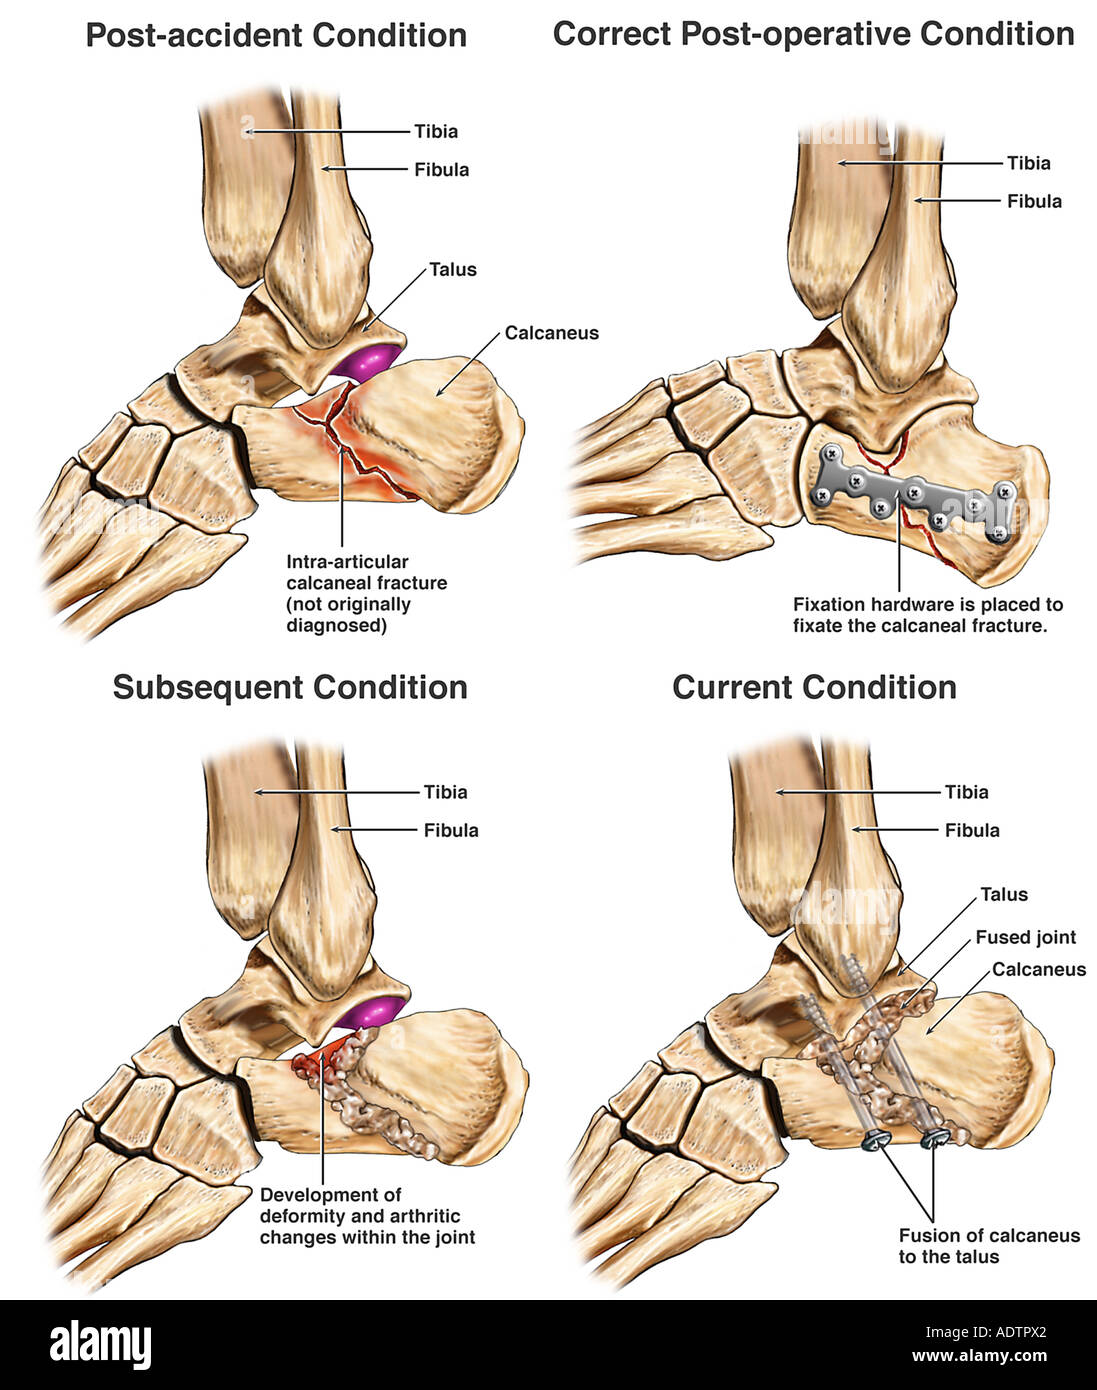 Calcaneal Fracture with Immediate Fixation v. Delayed Fusion - Stock Image